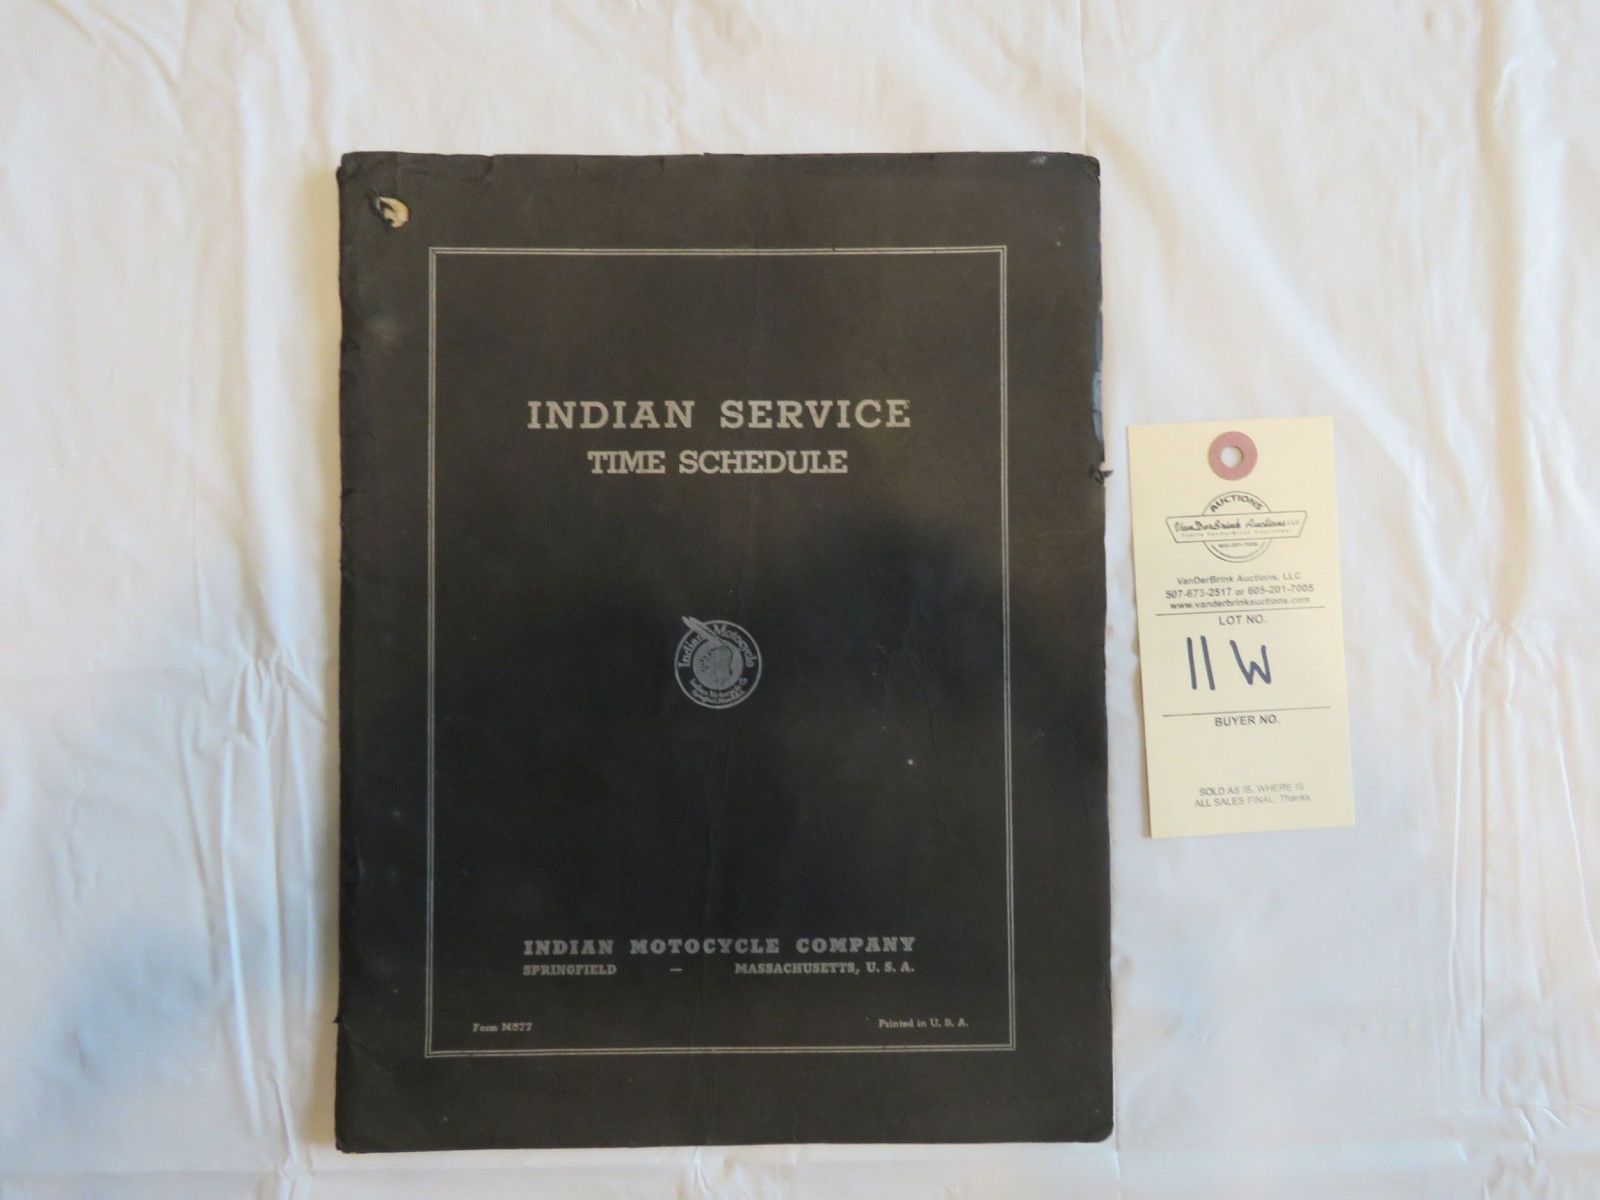 Indian Motorcycles Service Time Schedule Folder - Image 1